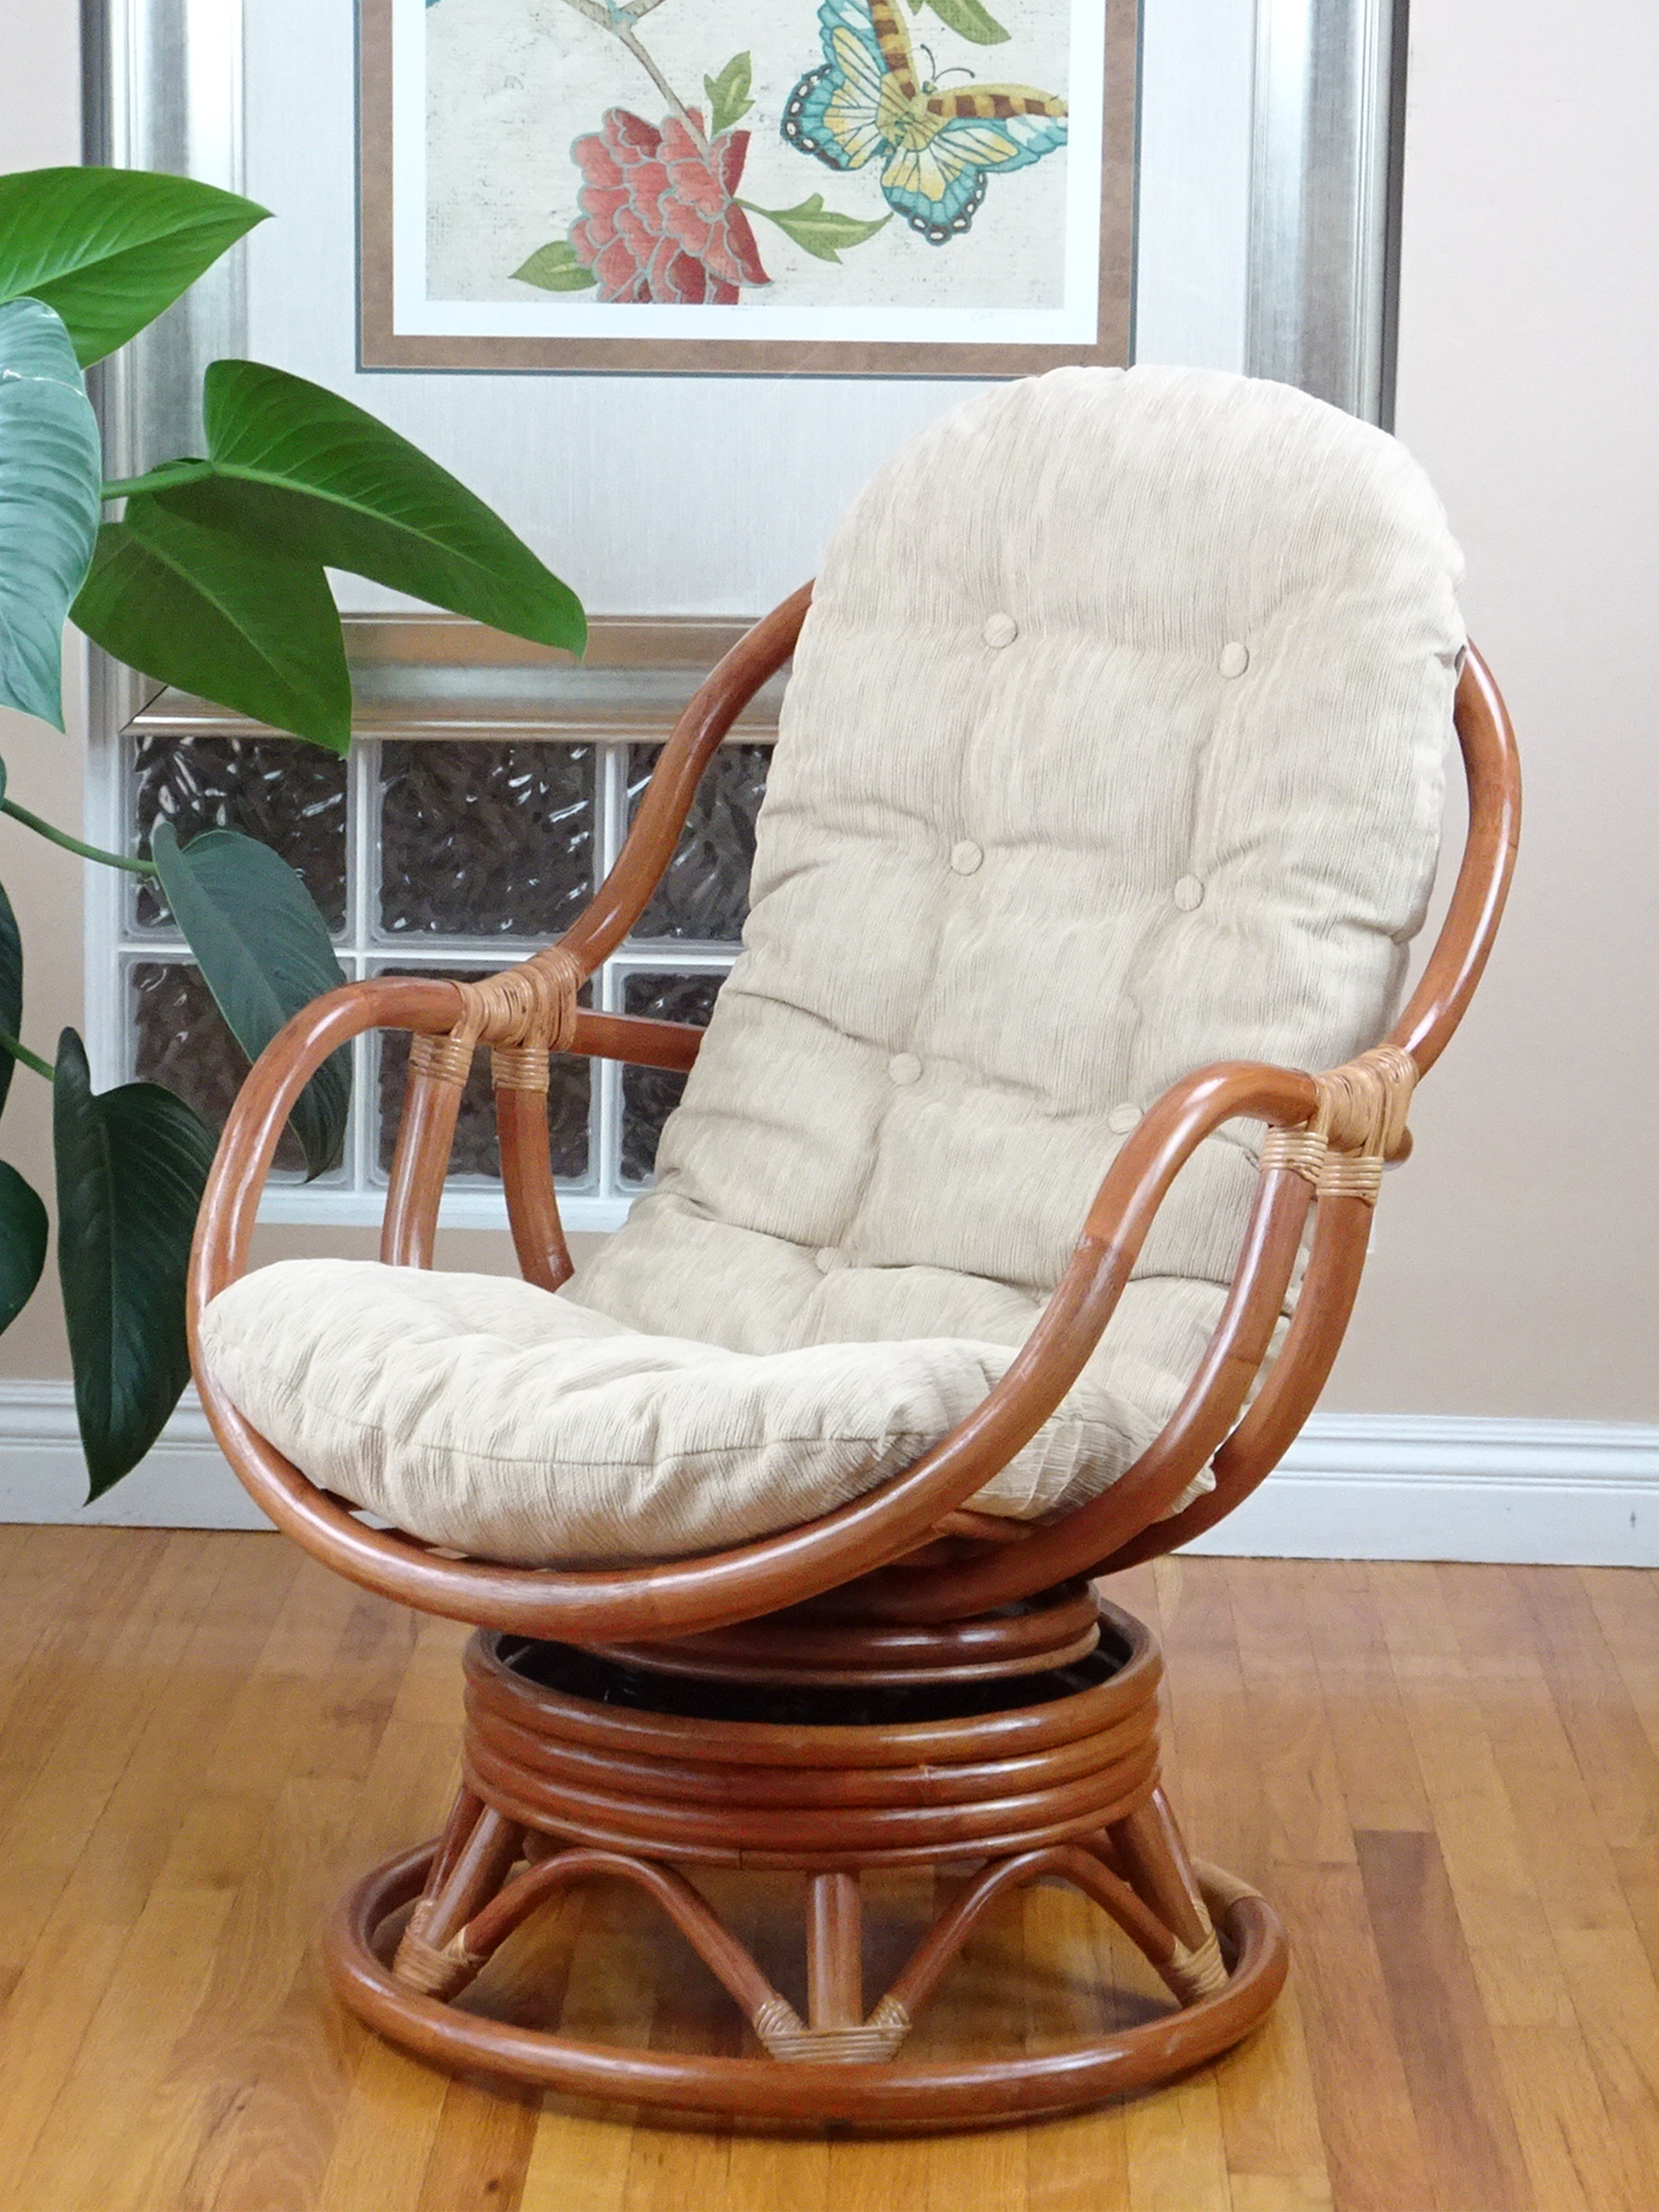 Bali Chair With Cream Cushion With Regard To Rocking Chairs, Cream And Brown (#2 of 20)